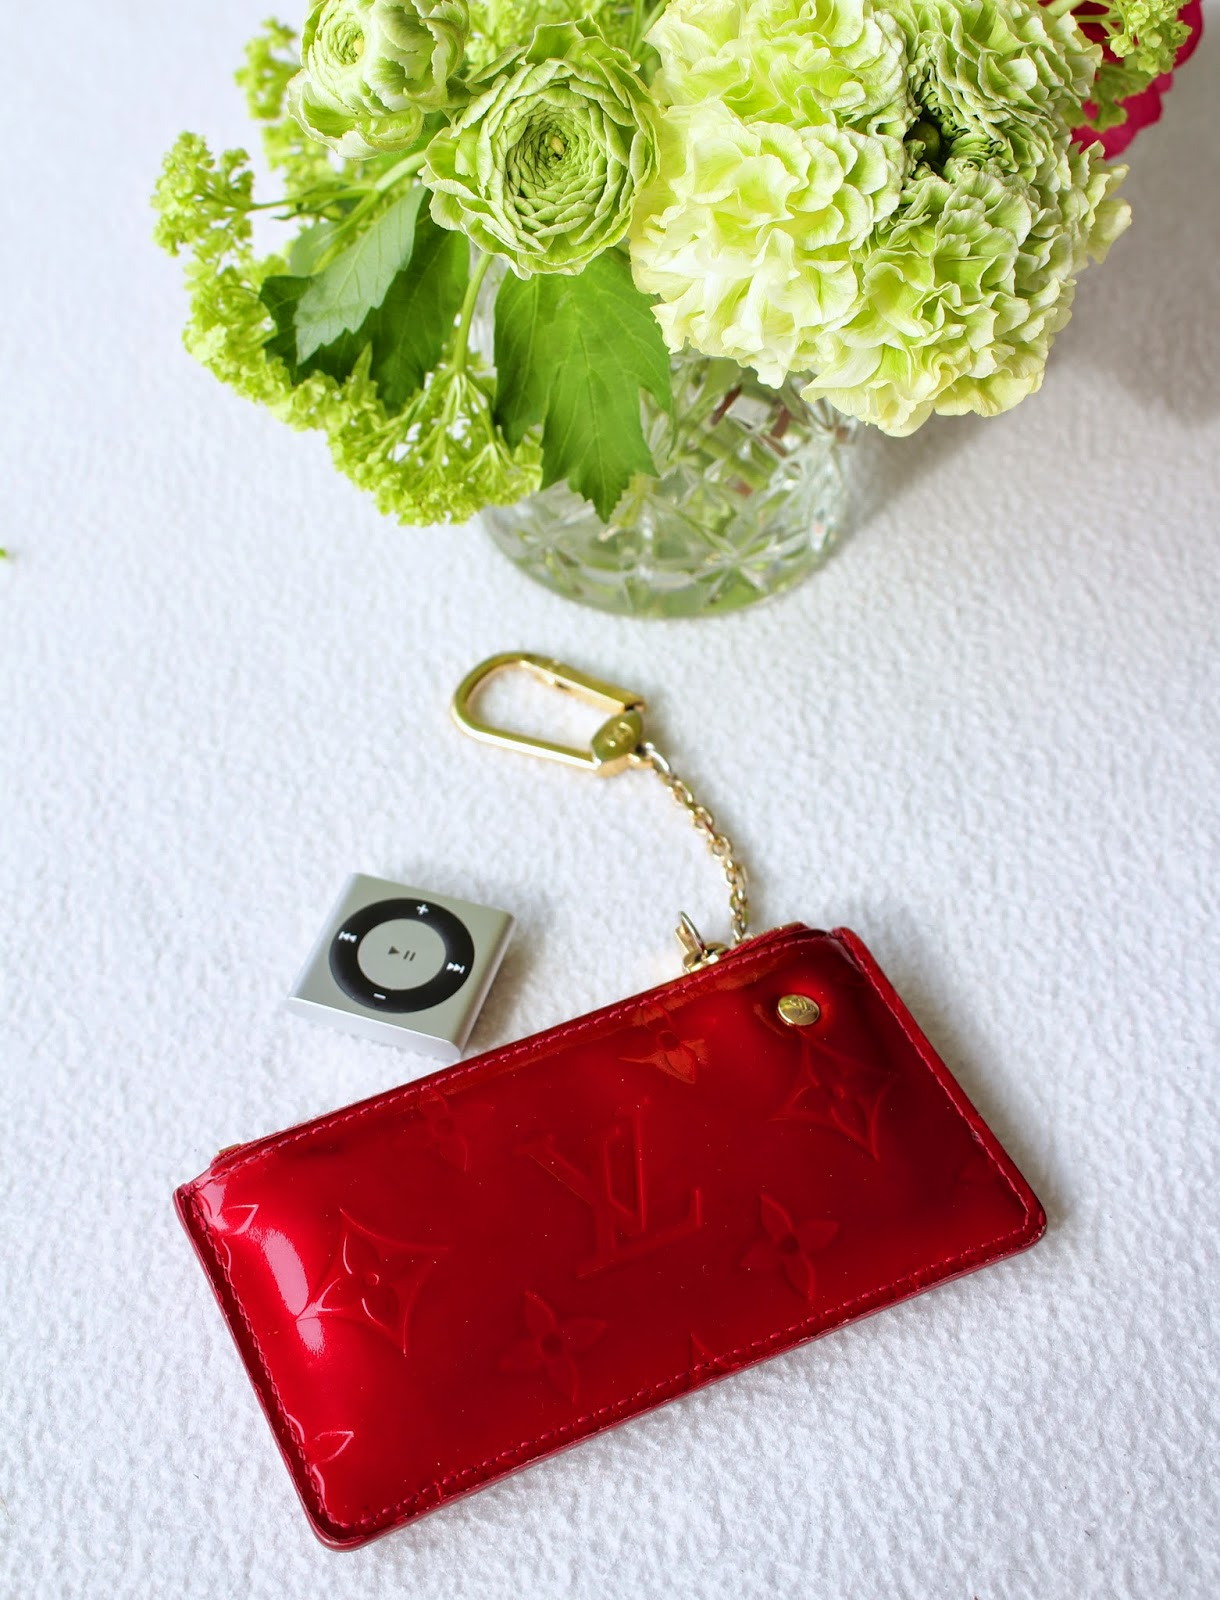 Louis Vuitton Patent red keyholder